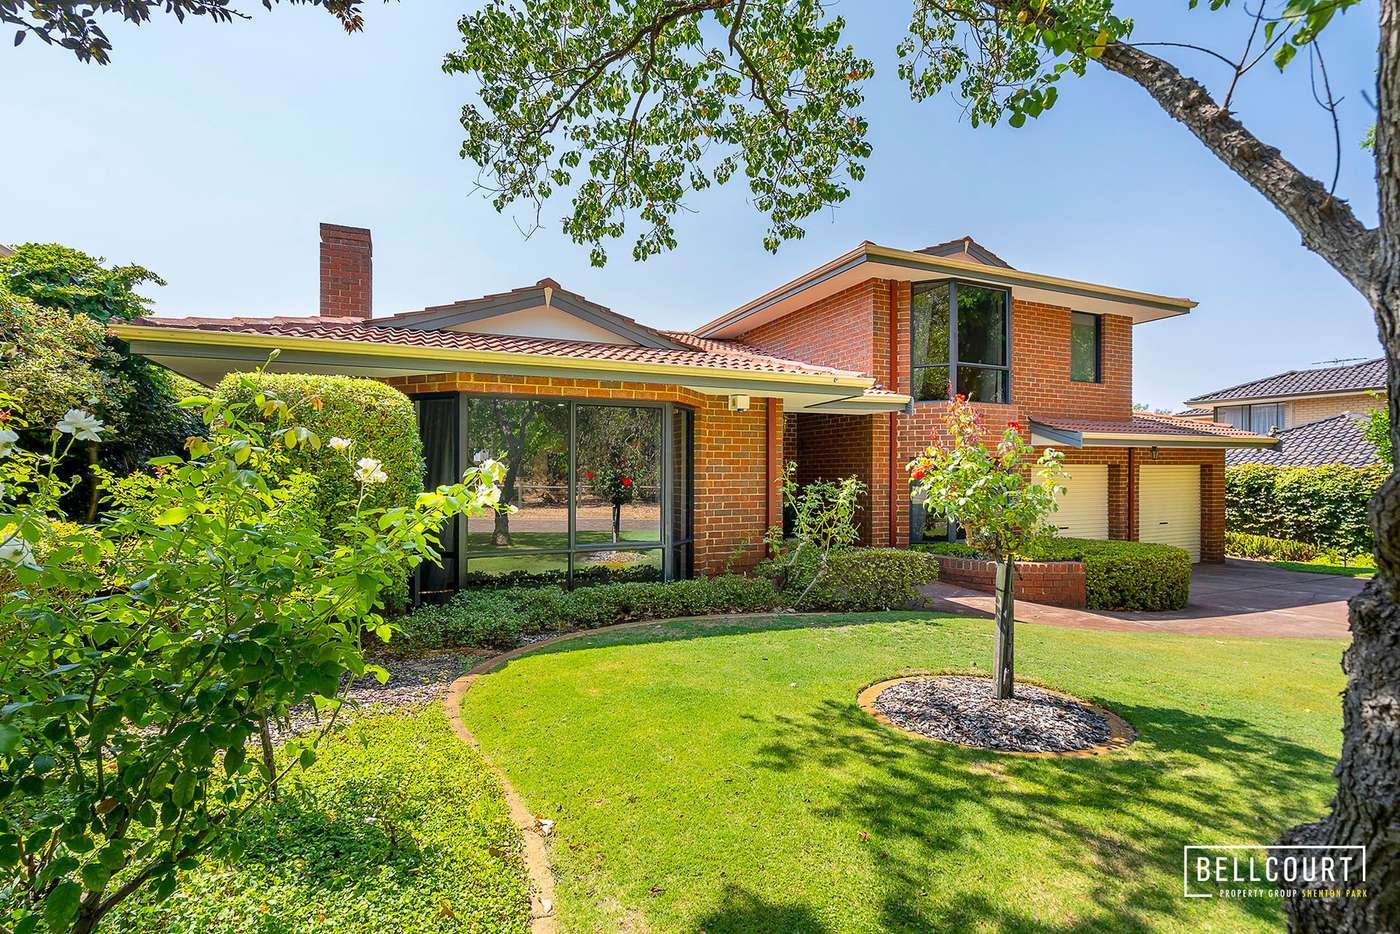 Main view of Homely house listing, 47 Churchlands Avenue, Churchlands WA 6018